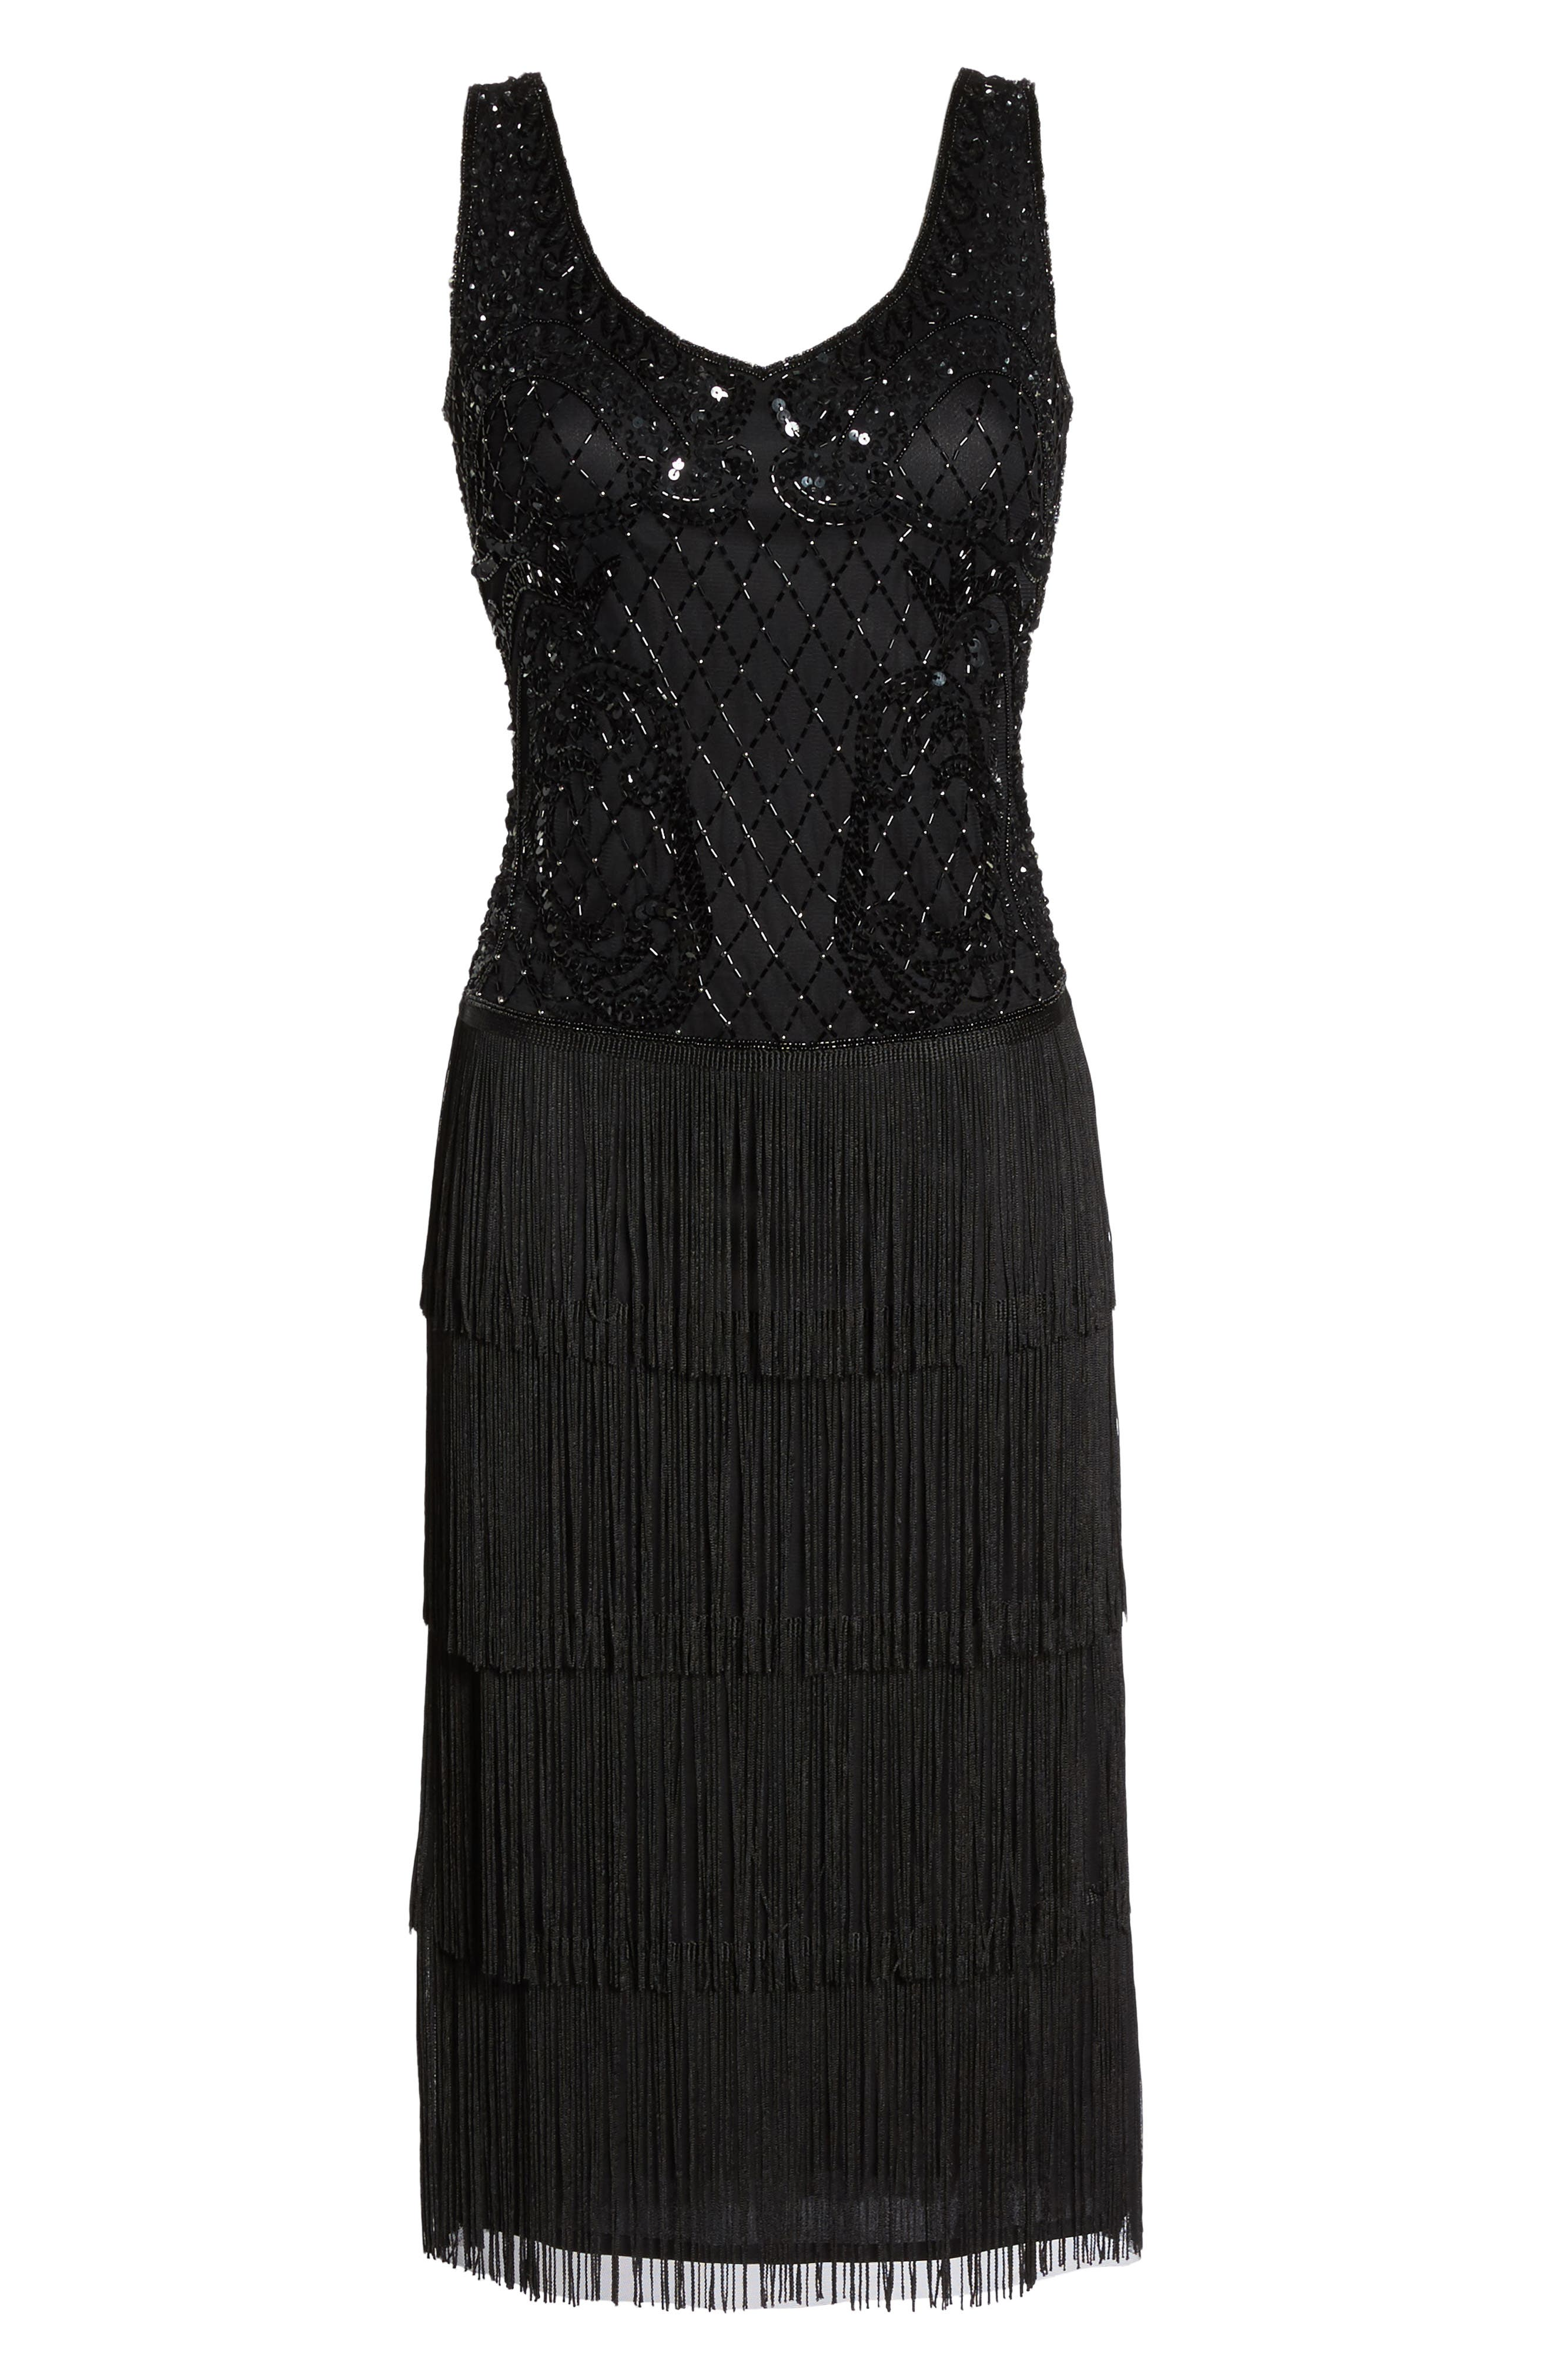 Embellished Fringe Tiered Sheath Dress,                             Alternate thumbnail 6, color,                             Black